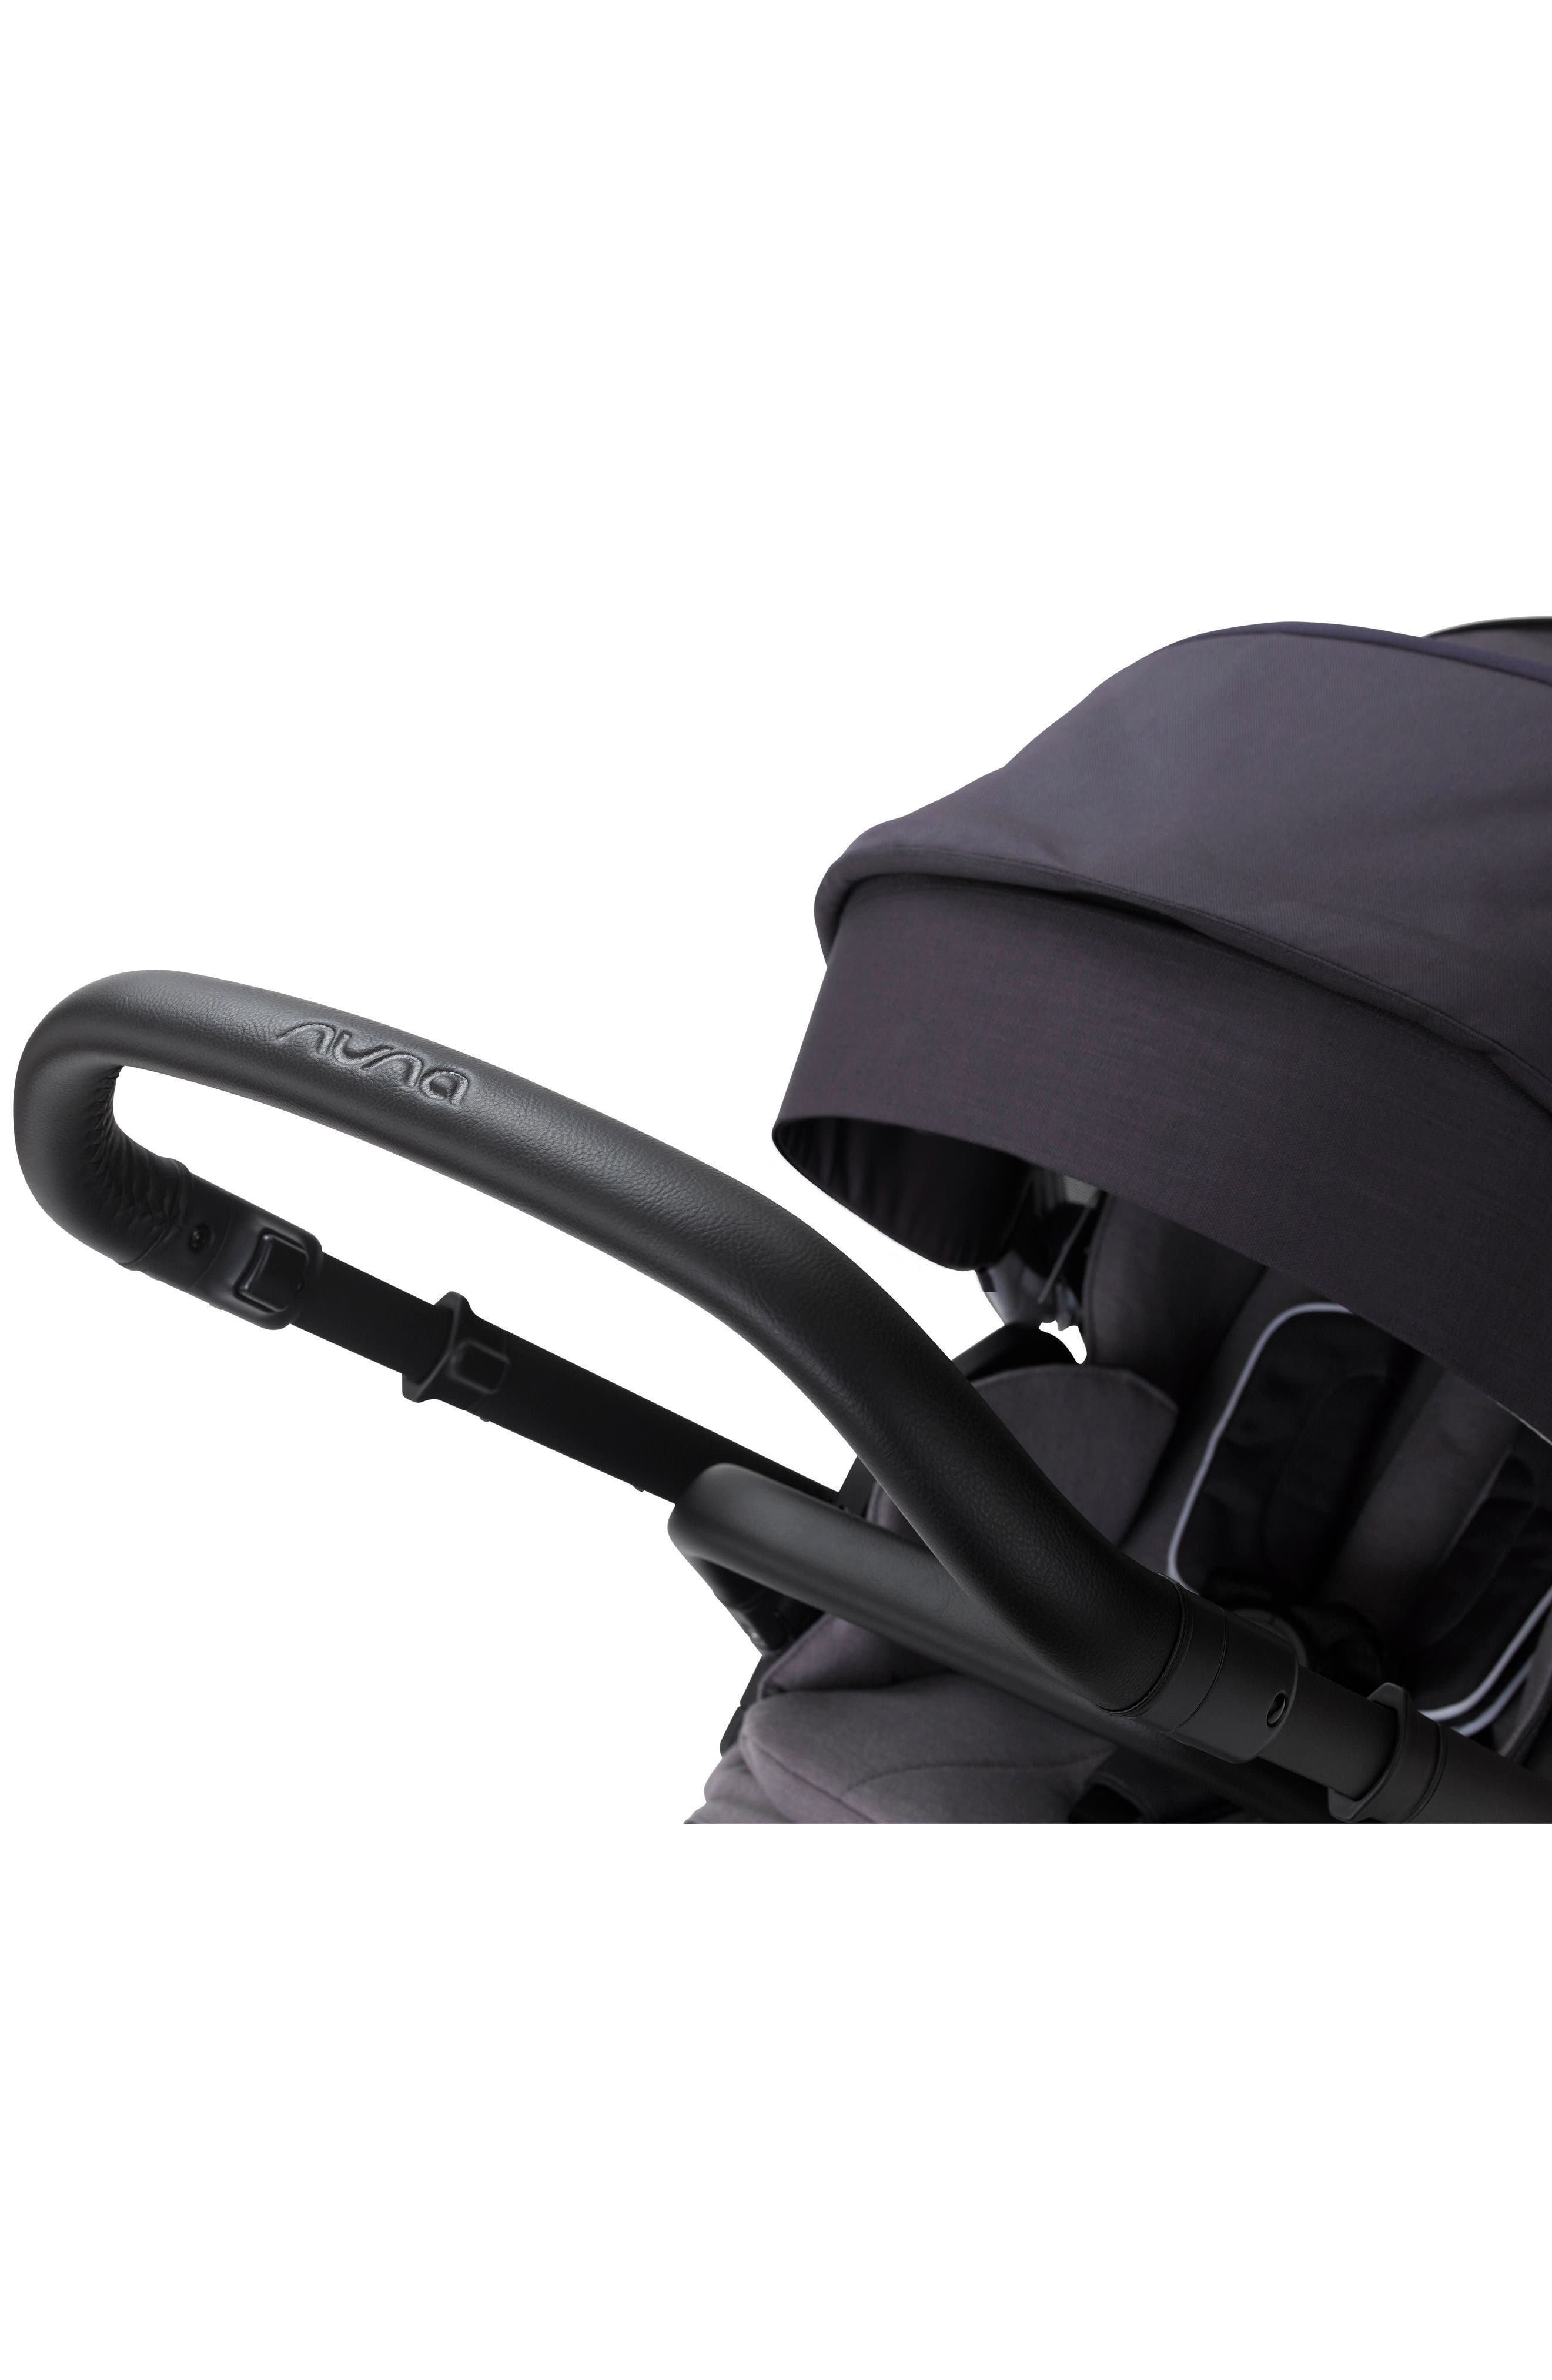 MIXX<sup>™</sup> Stroller System & PIPA<sup>™</sup> Car Seat Set,                             Alternate thumbnail 5, color,                             410